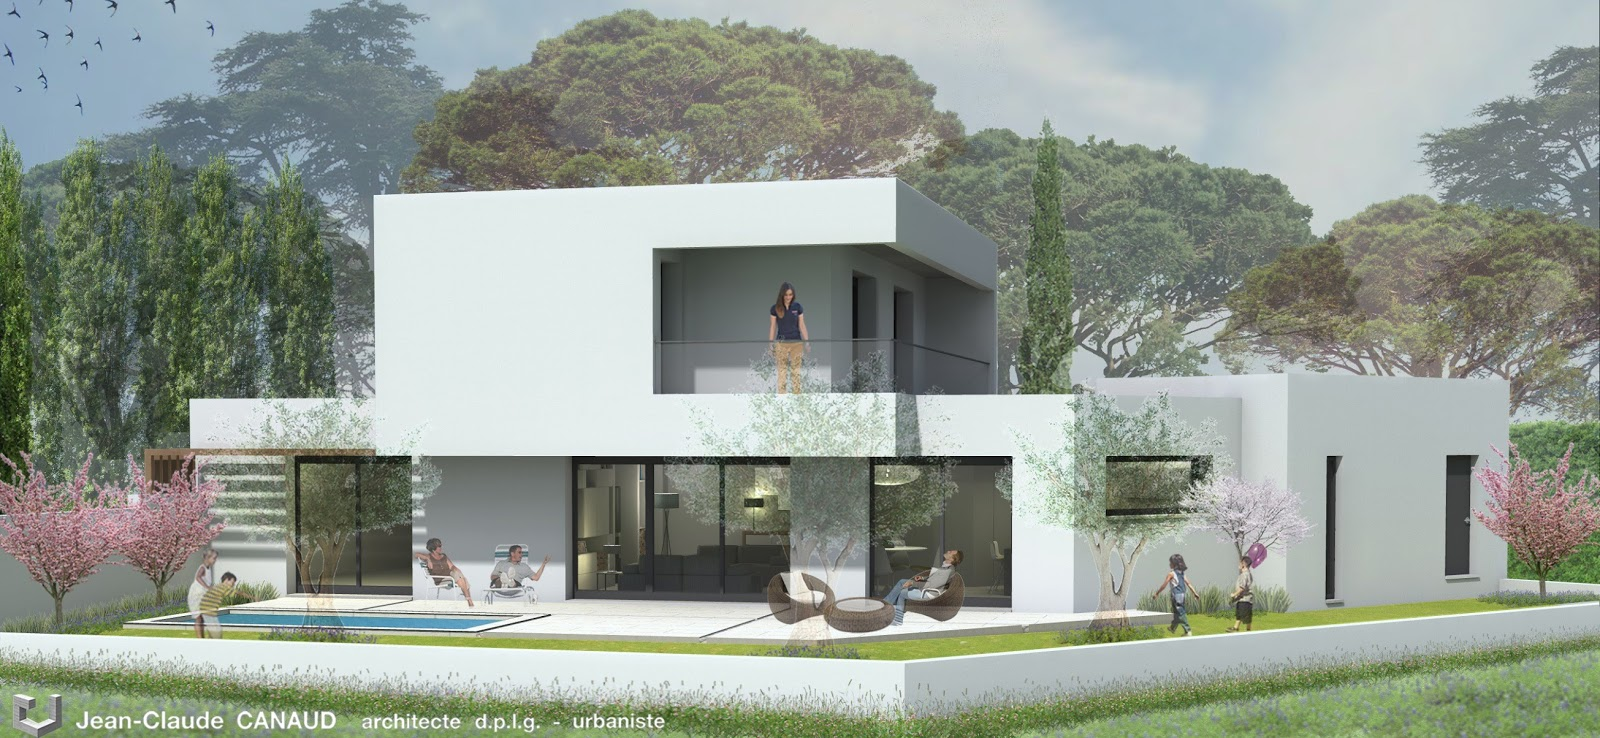 Canaud architecte projet de villa contemporaine for Architecte villa contemporaine